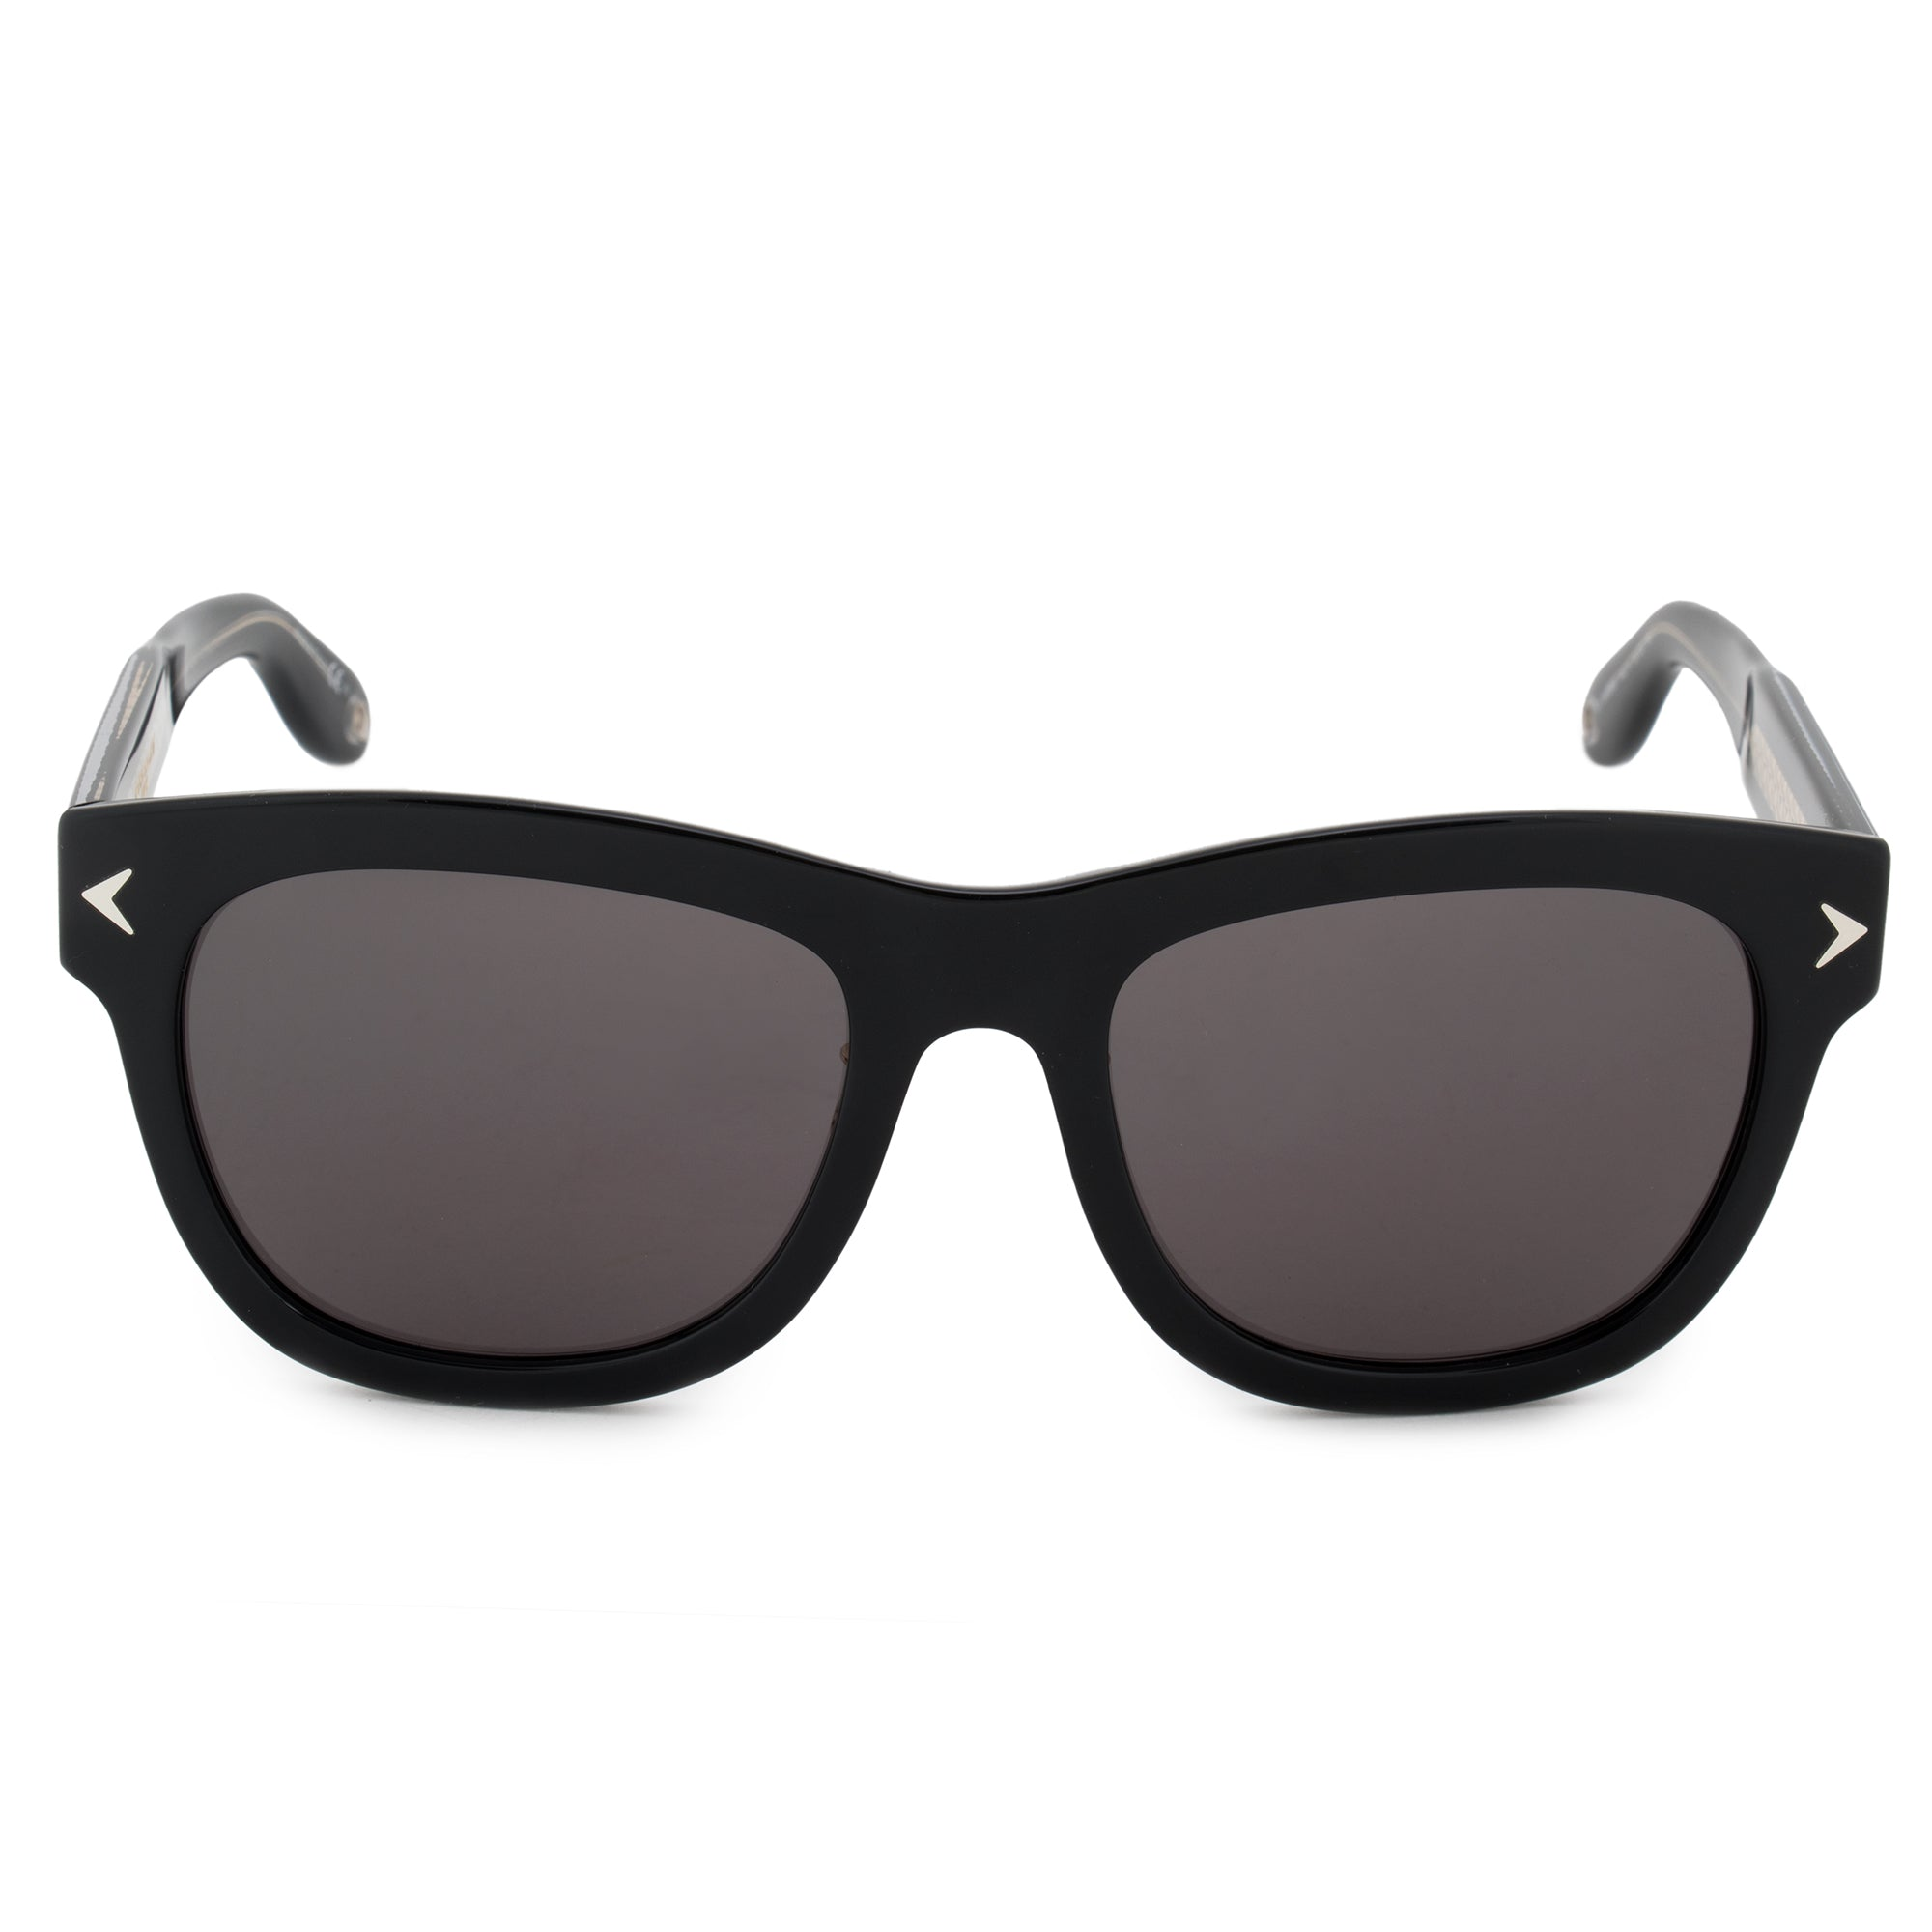 Givenchy Square Sunglasses GV7047/F/S Y6CY1 56